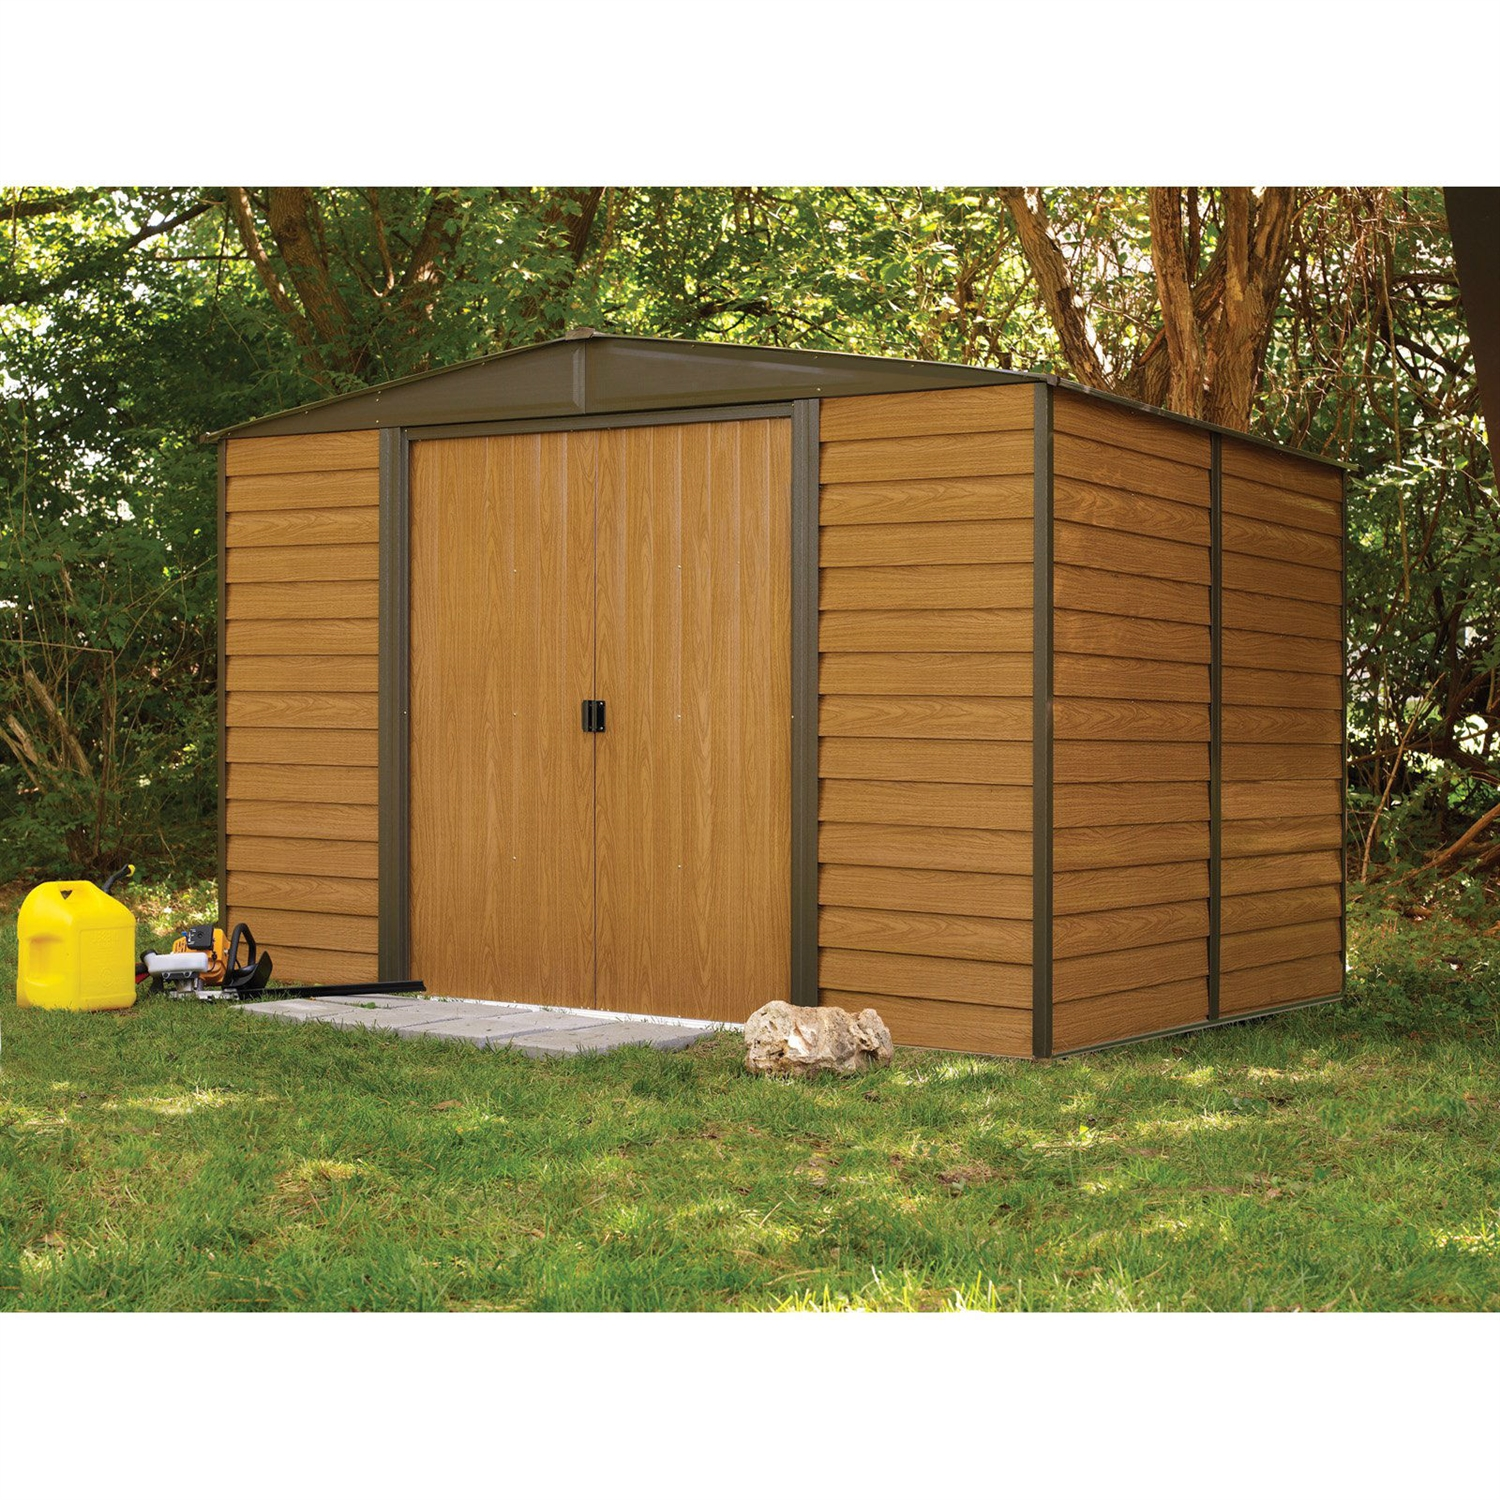 Steel Storage Sheds Outdoor 10 X 12 Ft Steel Storage Shed With Woodgrain Panels